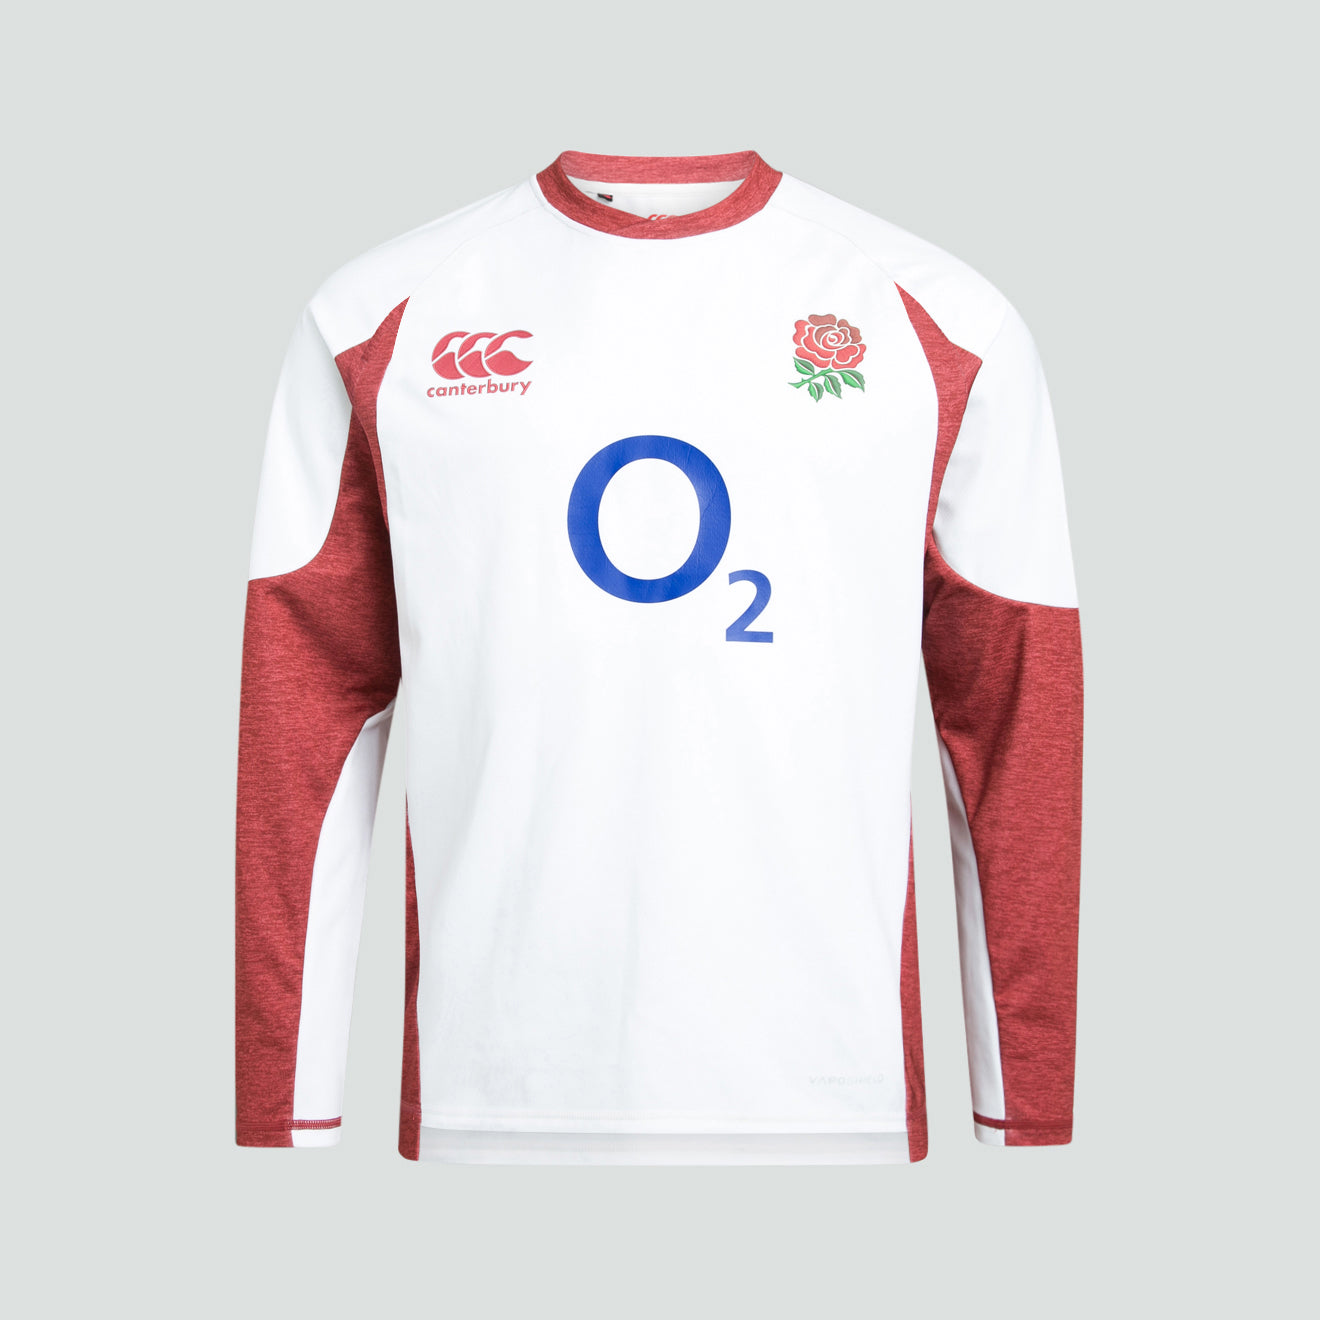 Canterbury Mens England Rugby Graphic T Shirt Training Tee Top Short Sleeve